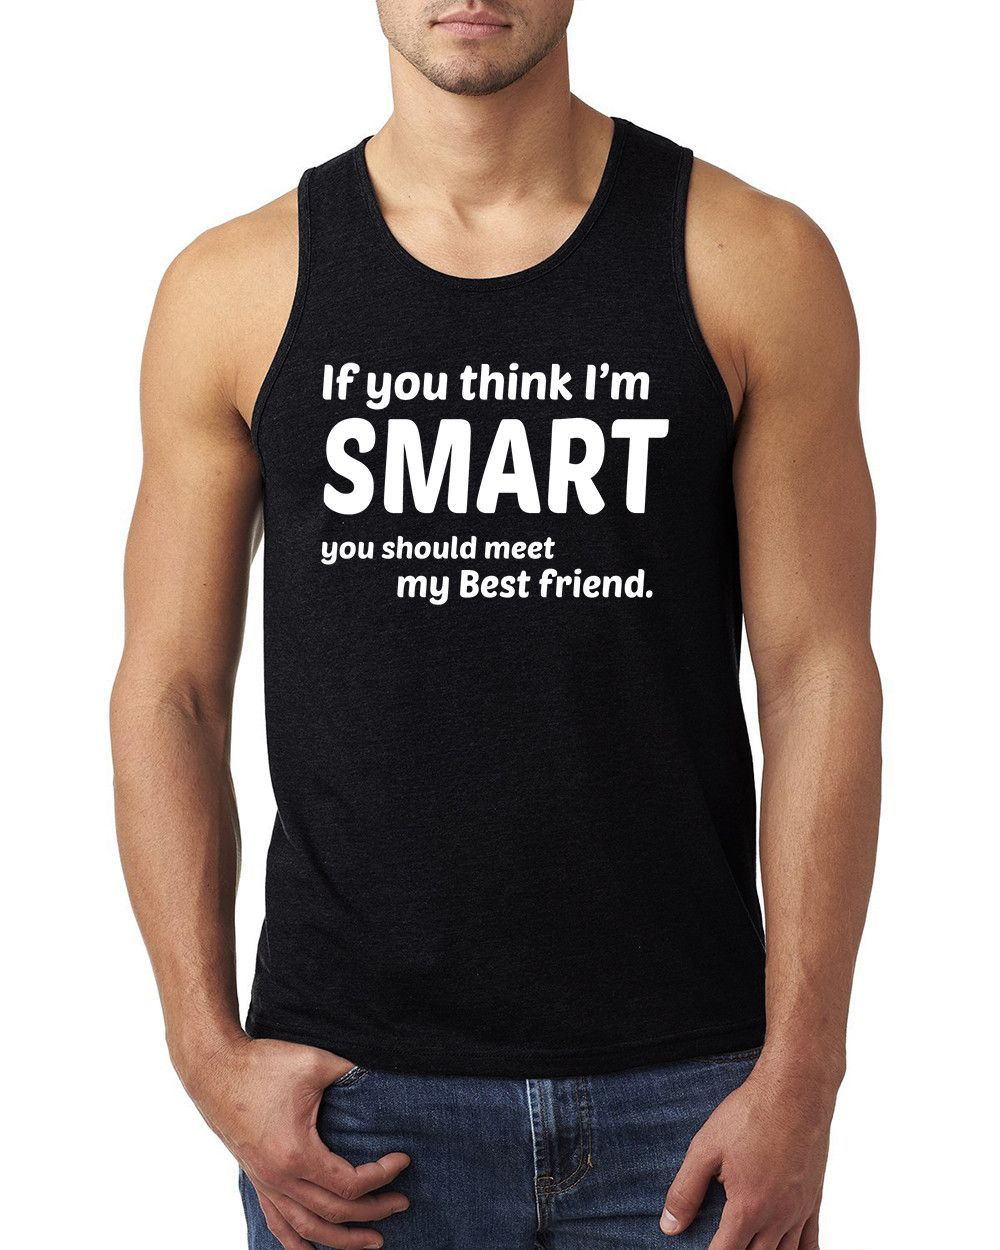 If you think I'm smart you should see my bestfriend Tank Top #bff #bestfriend #tees #fashionista #bfftshirt